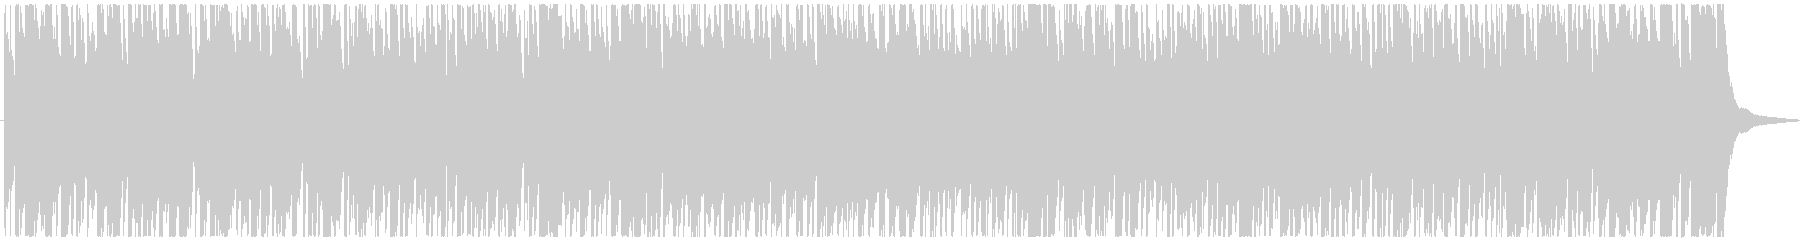 Short pops with energetic melody's unreproduced waveform